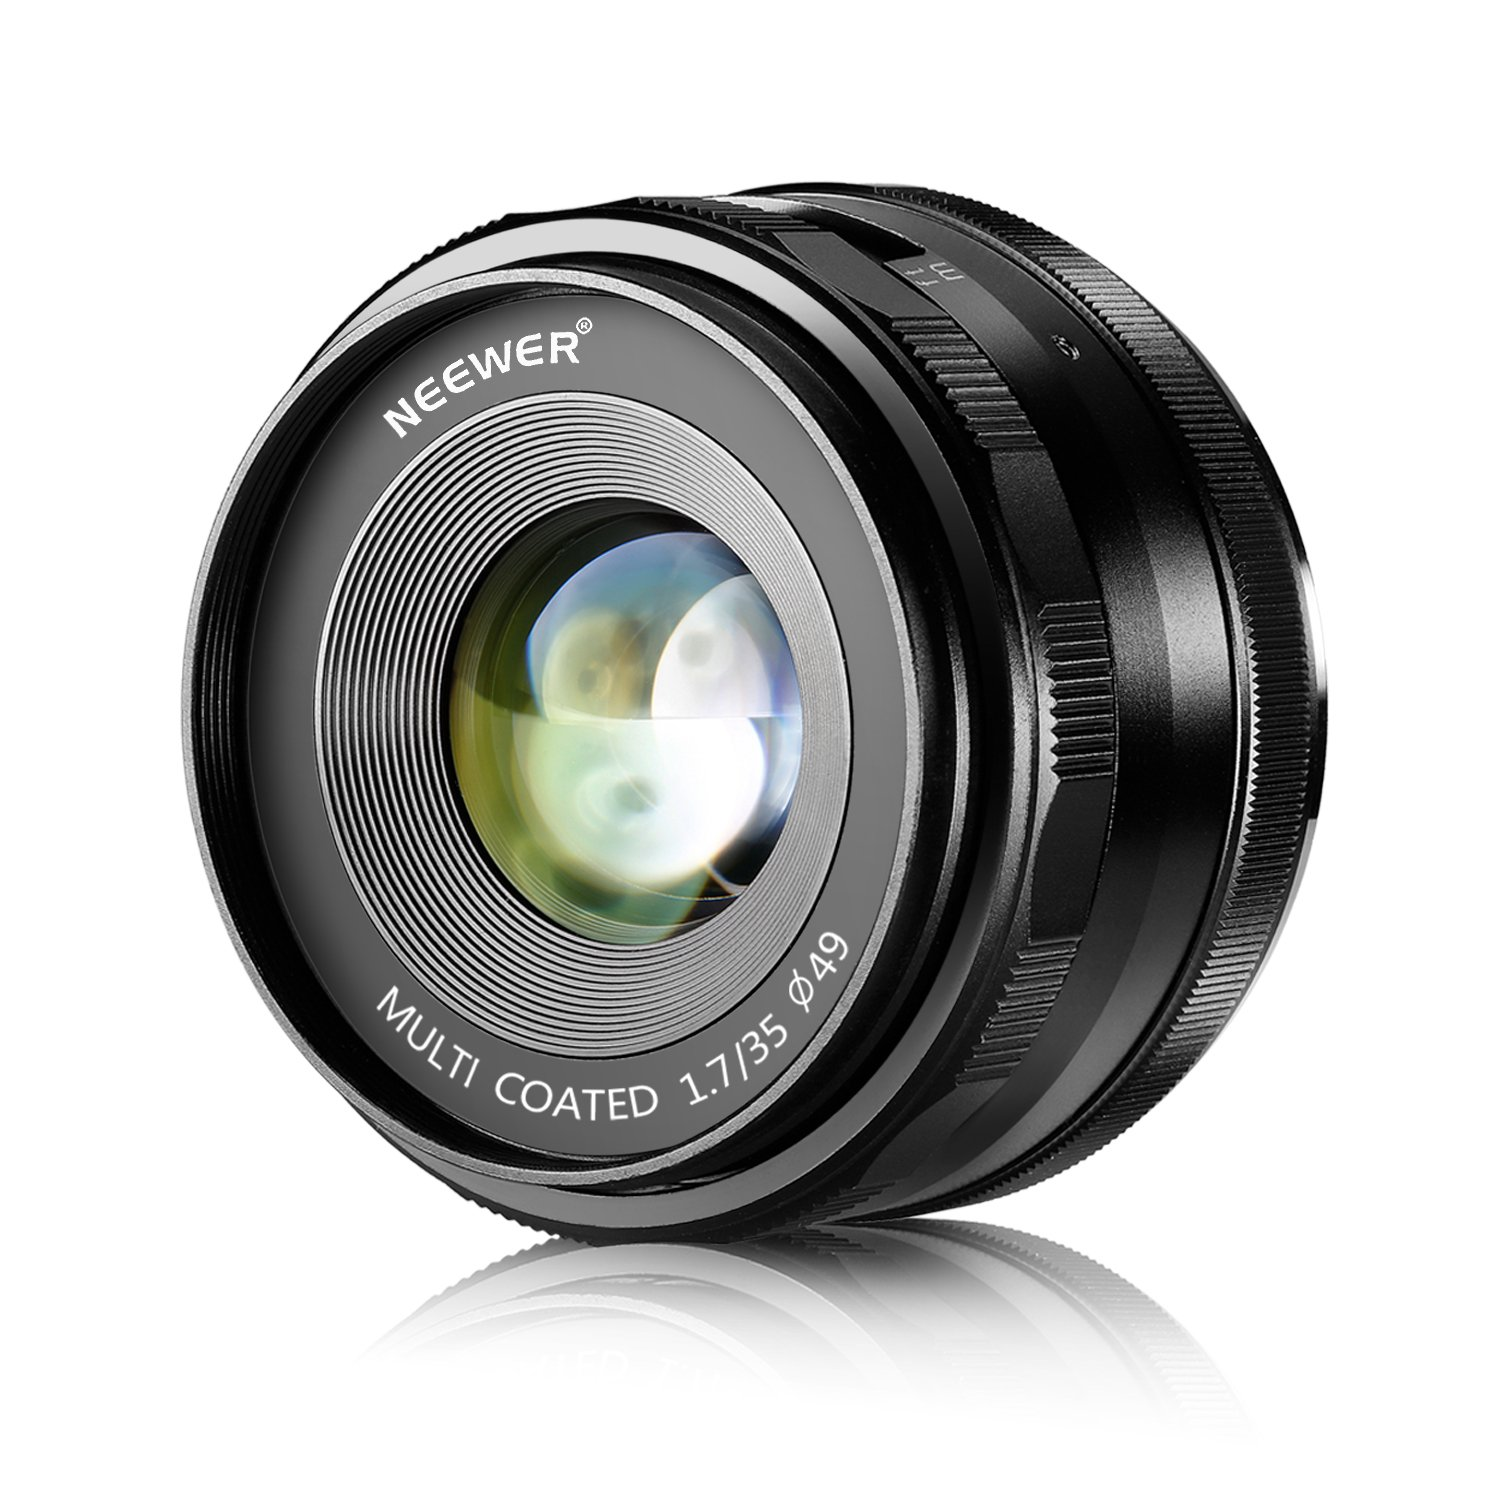 Neewer 35mm F/1.7 Large Aperture Manual Prime Fixed Lens APS-C for Sony E-Mount Digital Mirrorless Cameras A7III,A9,NEX 3,3N,5,NEX 5T,NEX 5R,NEX 6,7,A5000,A5100,A6000,A6100,A6300,A6500 by Neewer